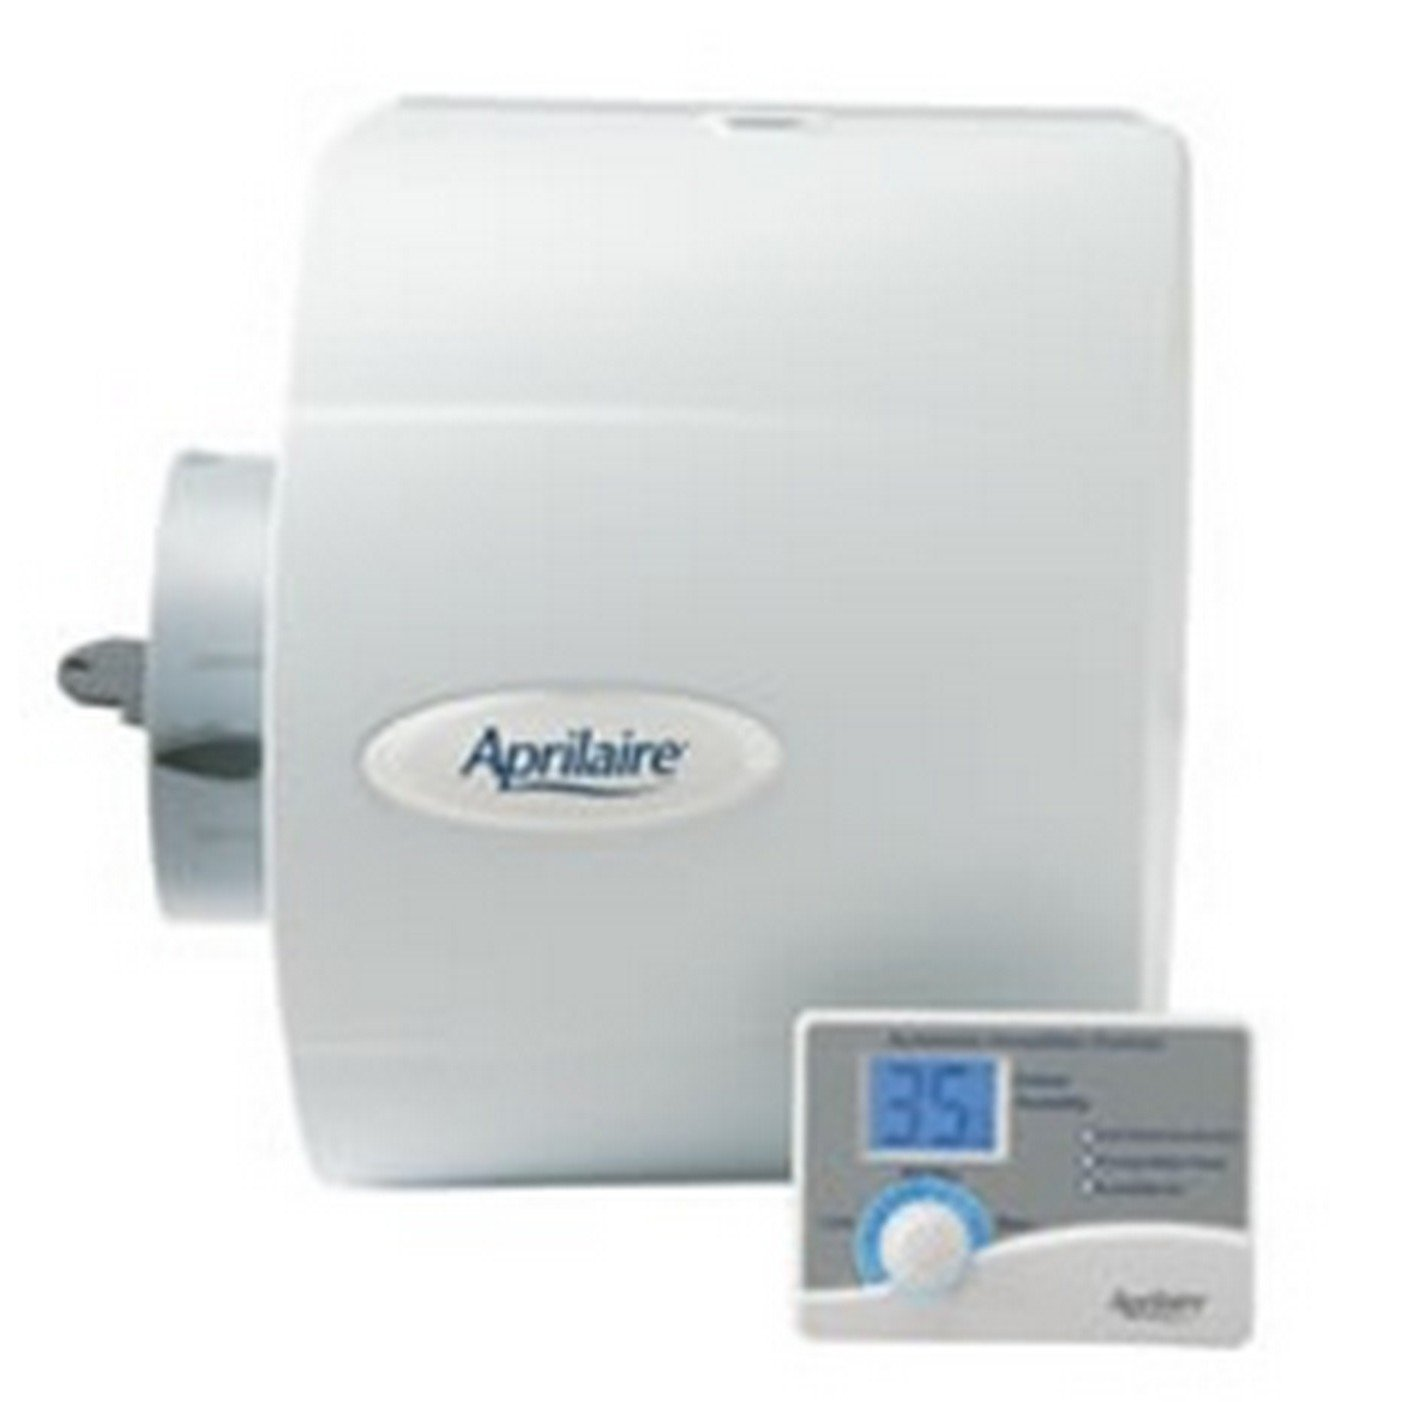 hight resolution of aprilaire 600 humidifier whole house bypass 24v w digital control